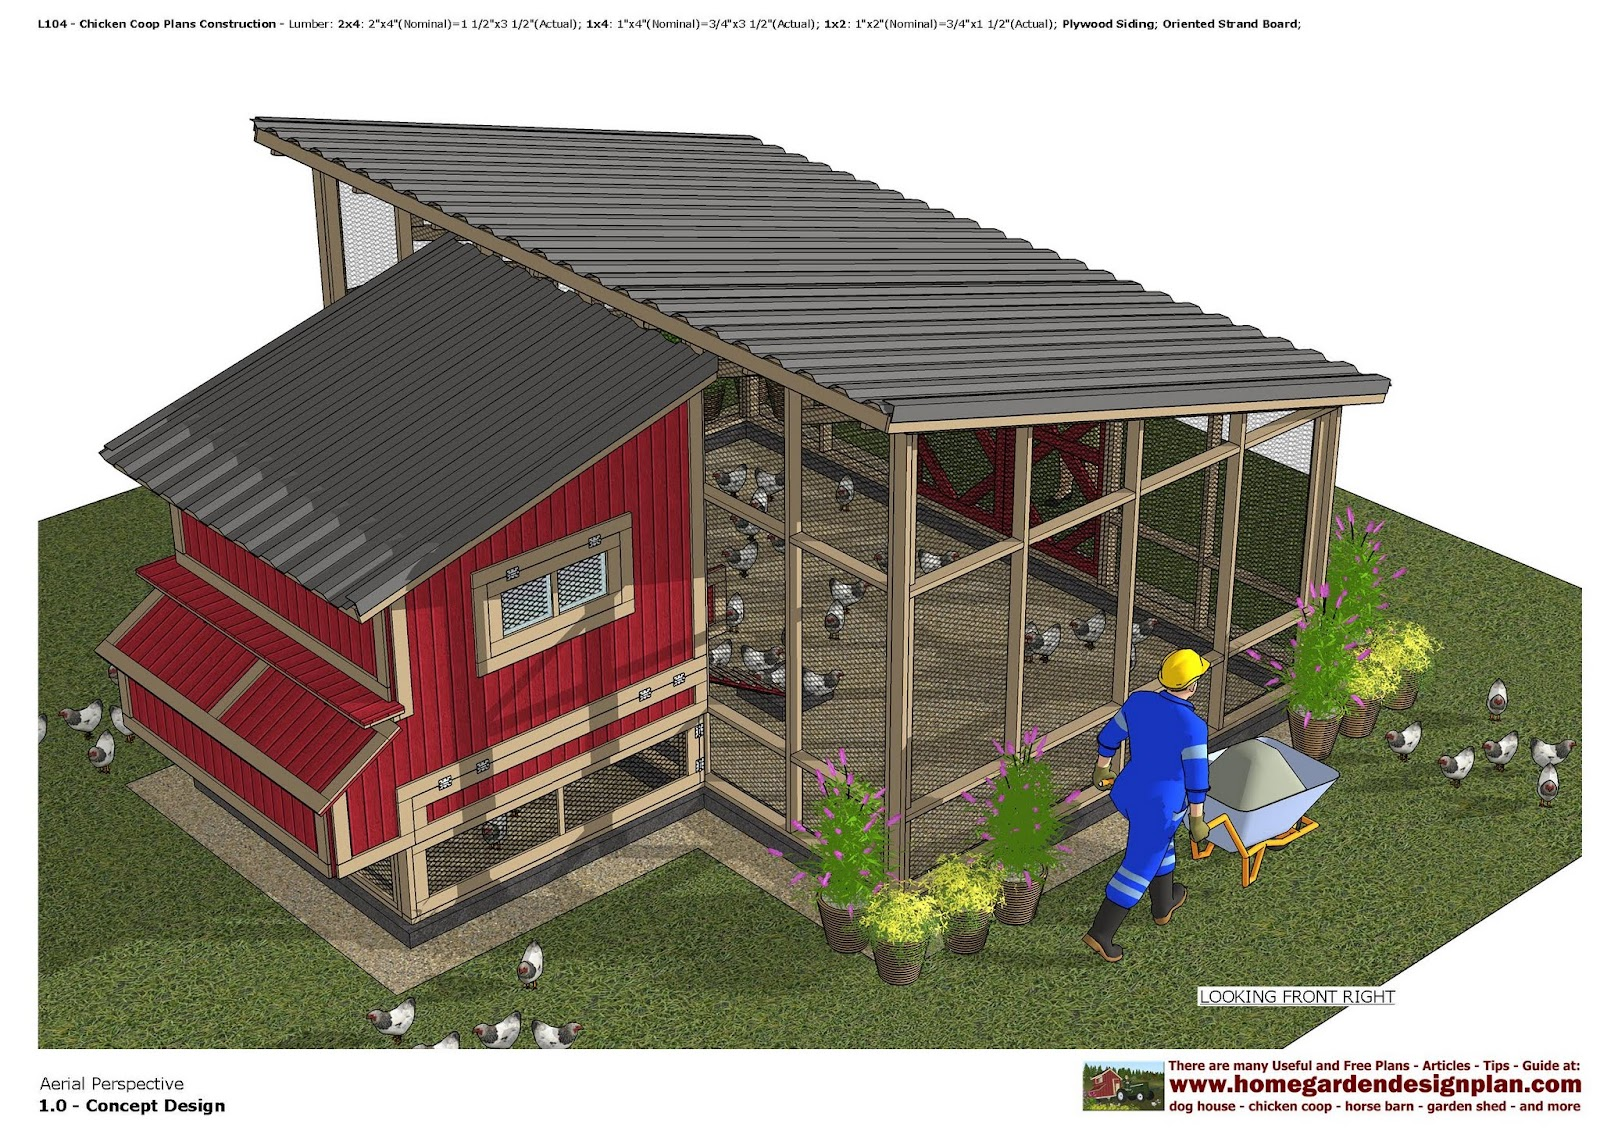 Home garden plans l104 chicken coop plans construction for How to build a chicken hutch